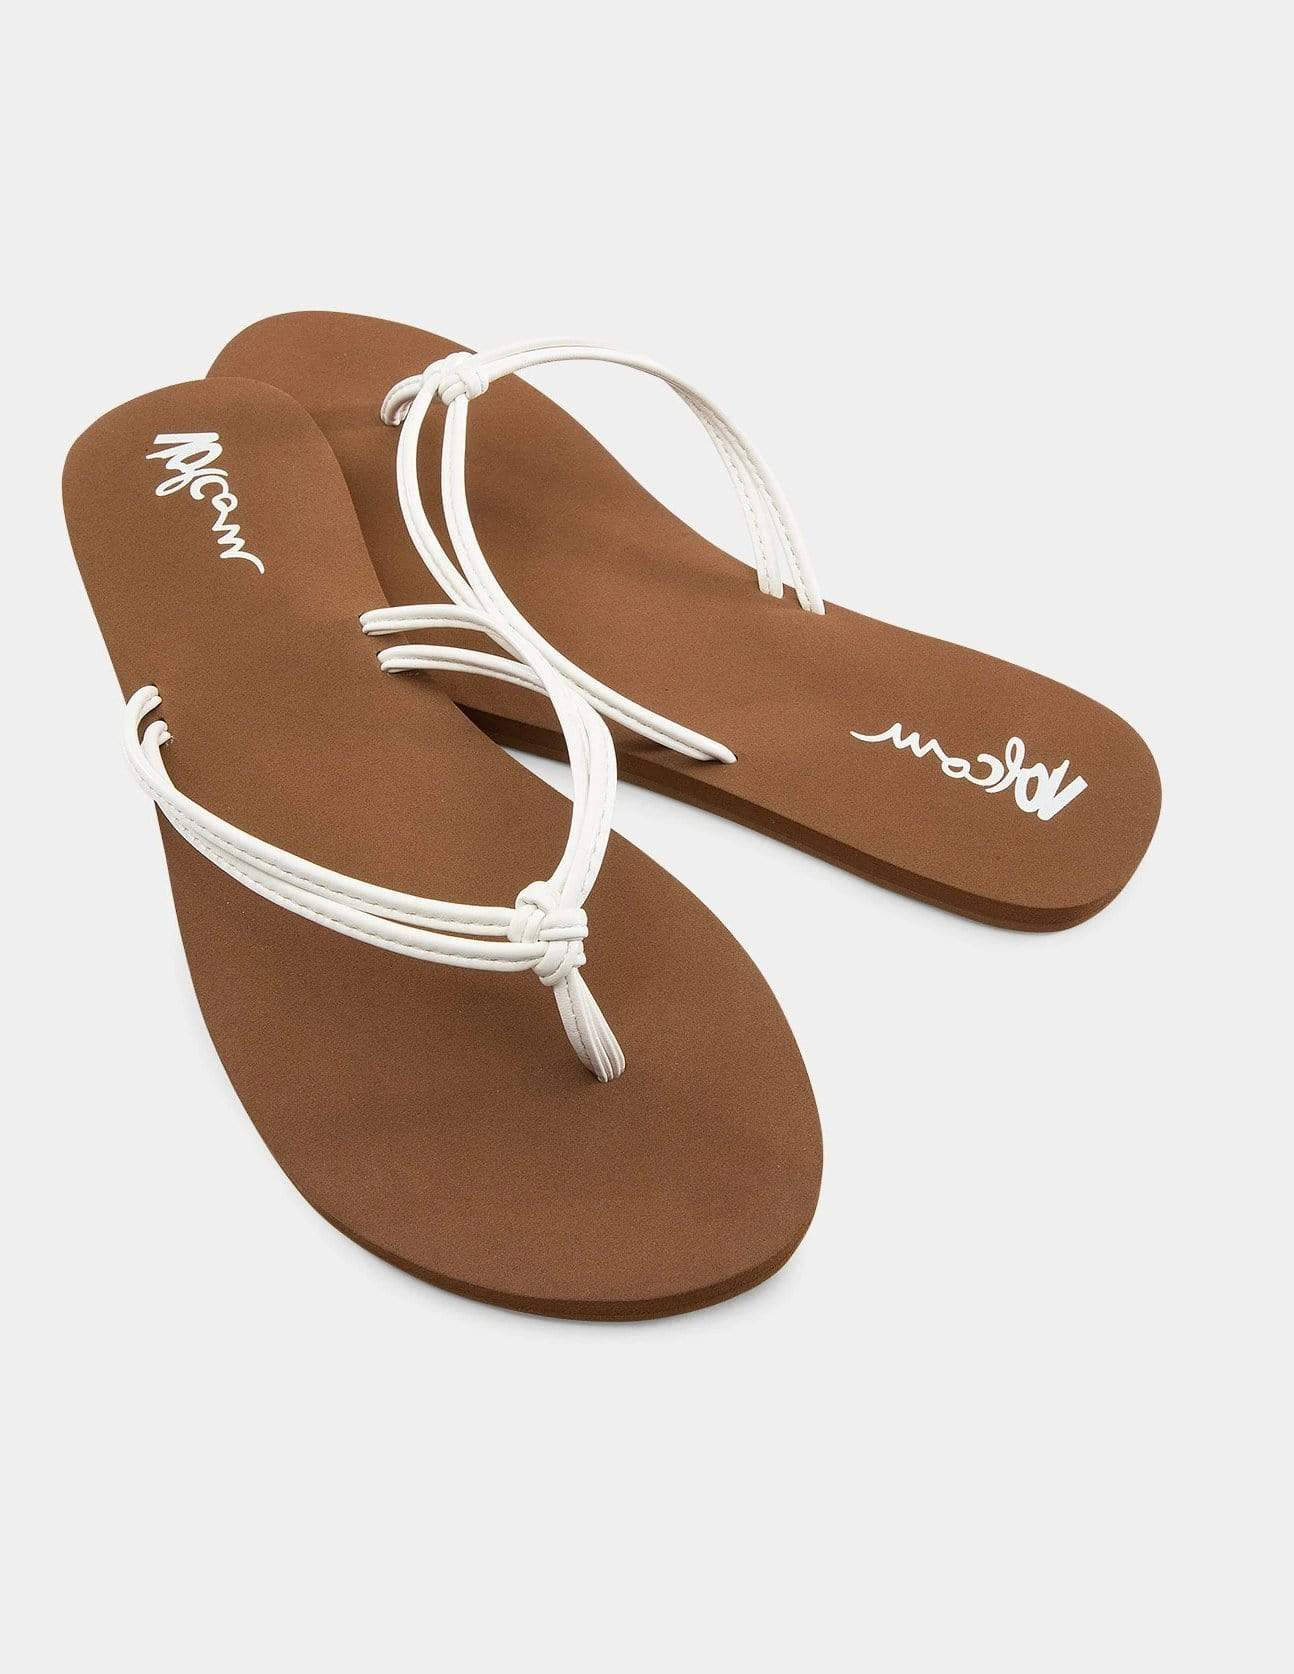 volcom forever and ever ii sandals in white size 7